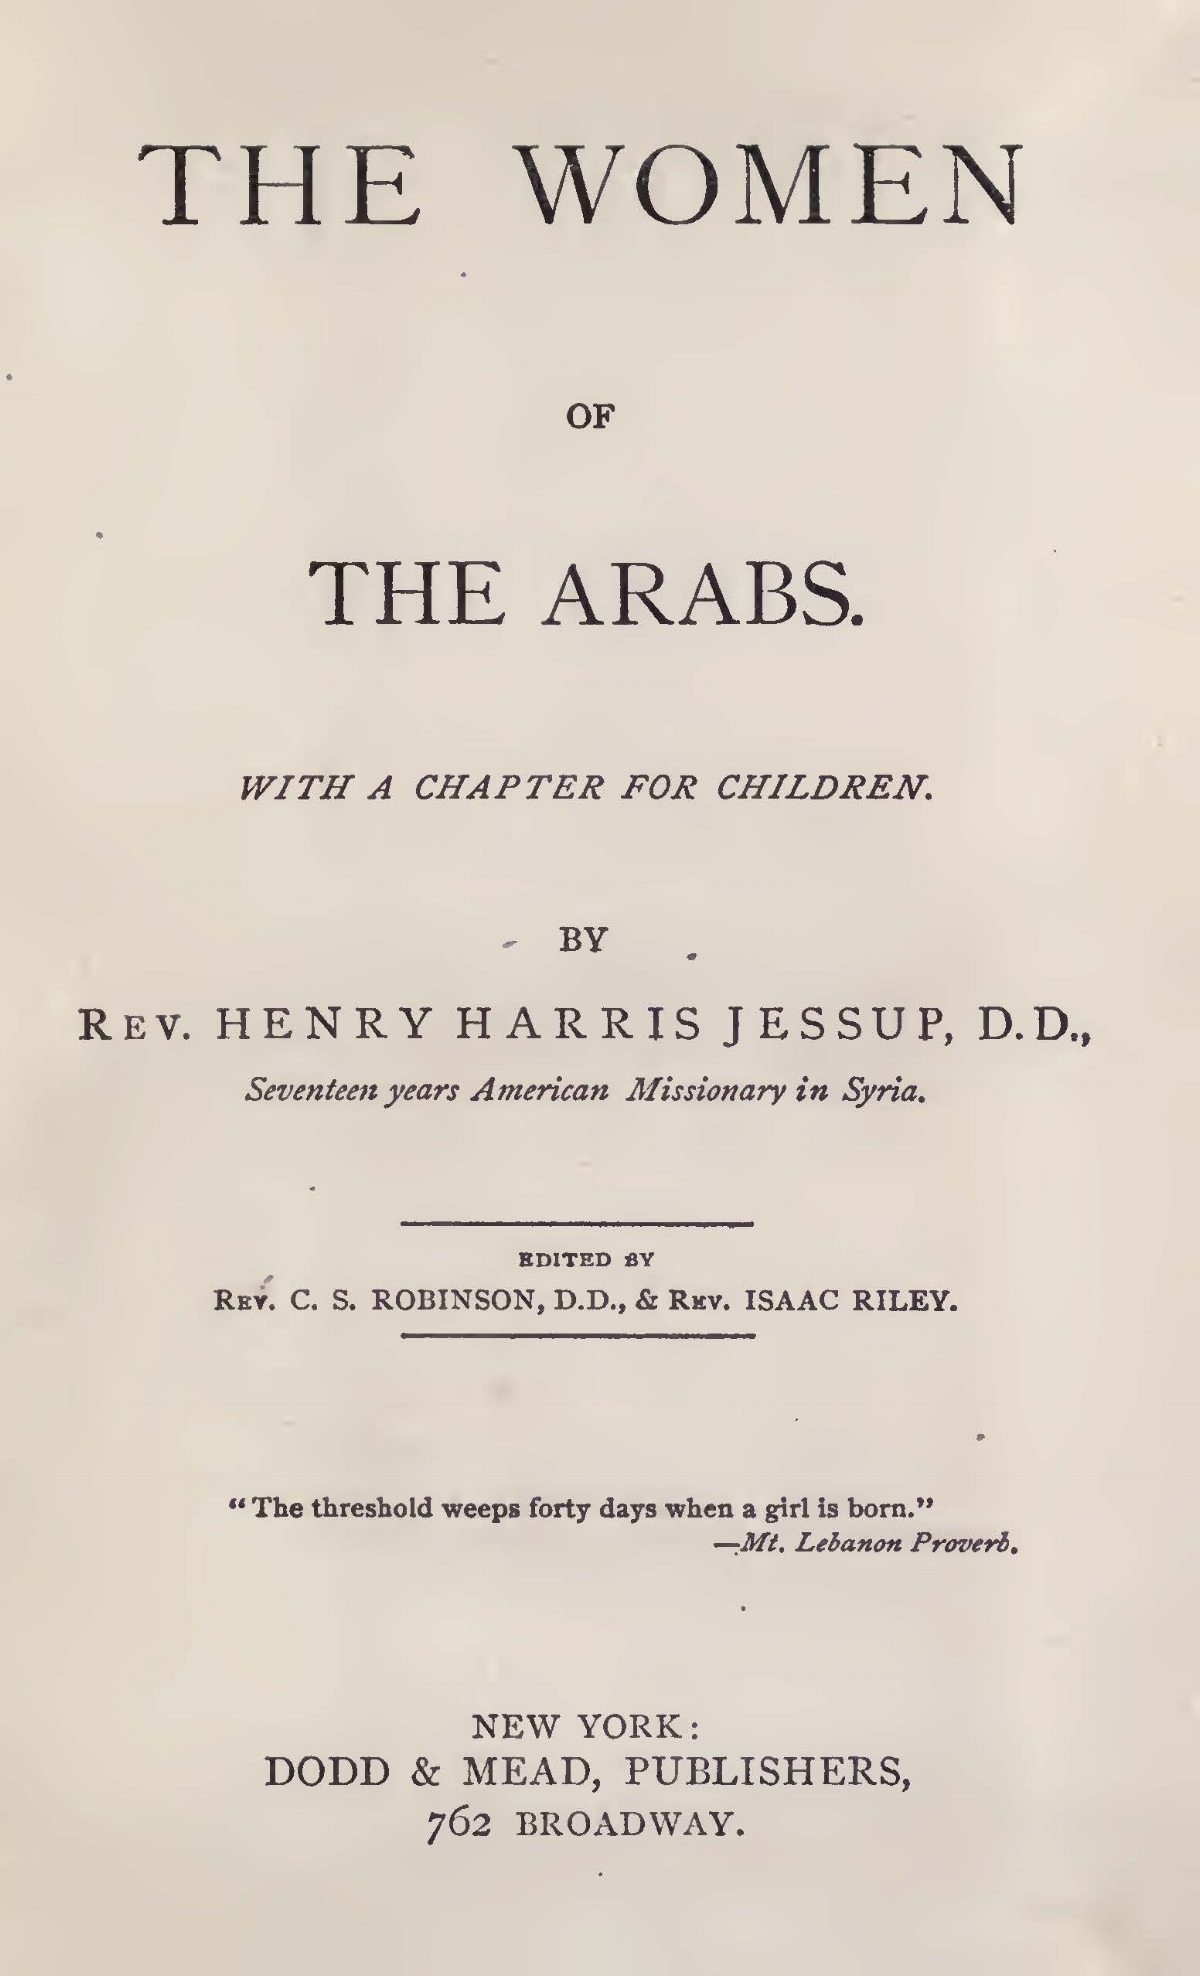 Jessup, Henry Harris, The Women of the Arabs Title Page.jpg